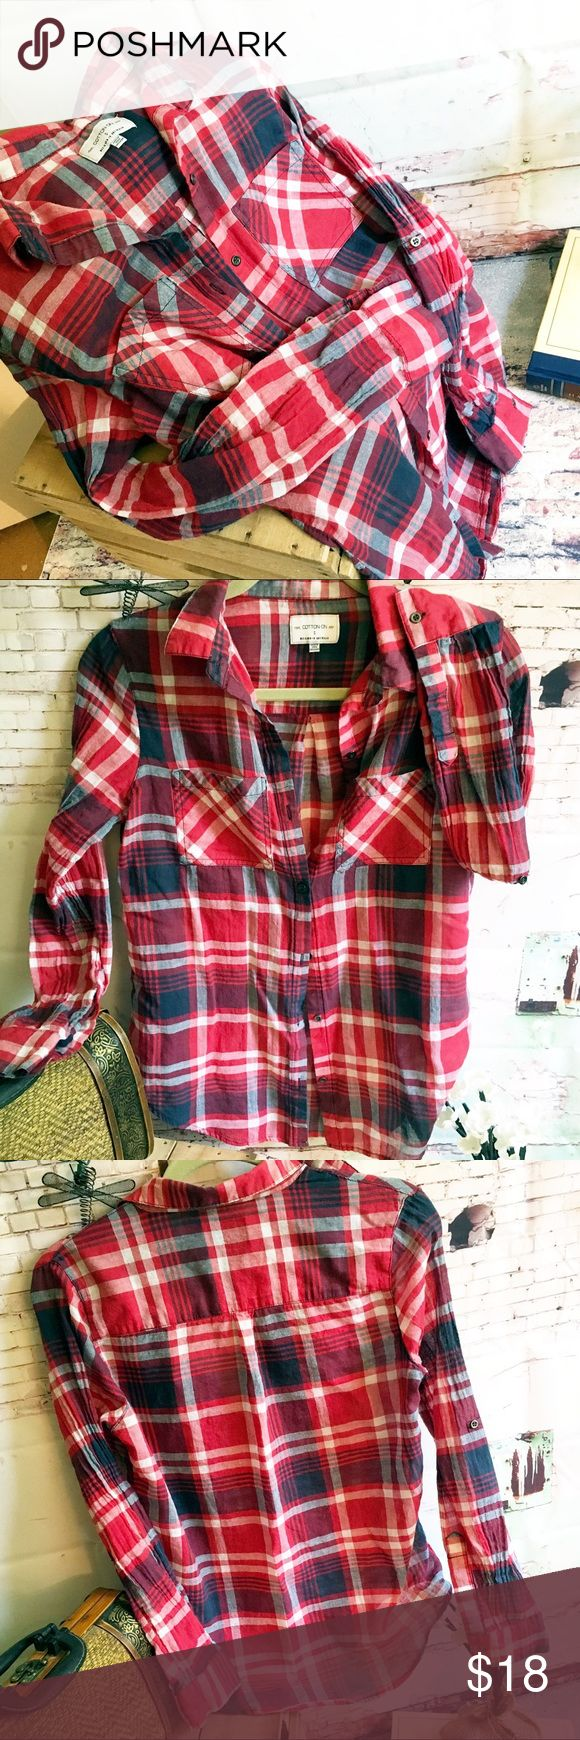 """COTTON ON Button up Top, Size Small COTTON ON Button up Top, Size Small Bright plaid top, 100% cotton, made in Australia.  Very light fabric;  wear rolled up or down.  Chest measures 18"""", sleeve length is 17"""" from underarm and length of top is 24-25"""".  Measurements are approximate. Cotton On Tops Button Down Shirts"""